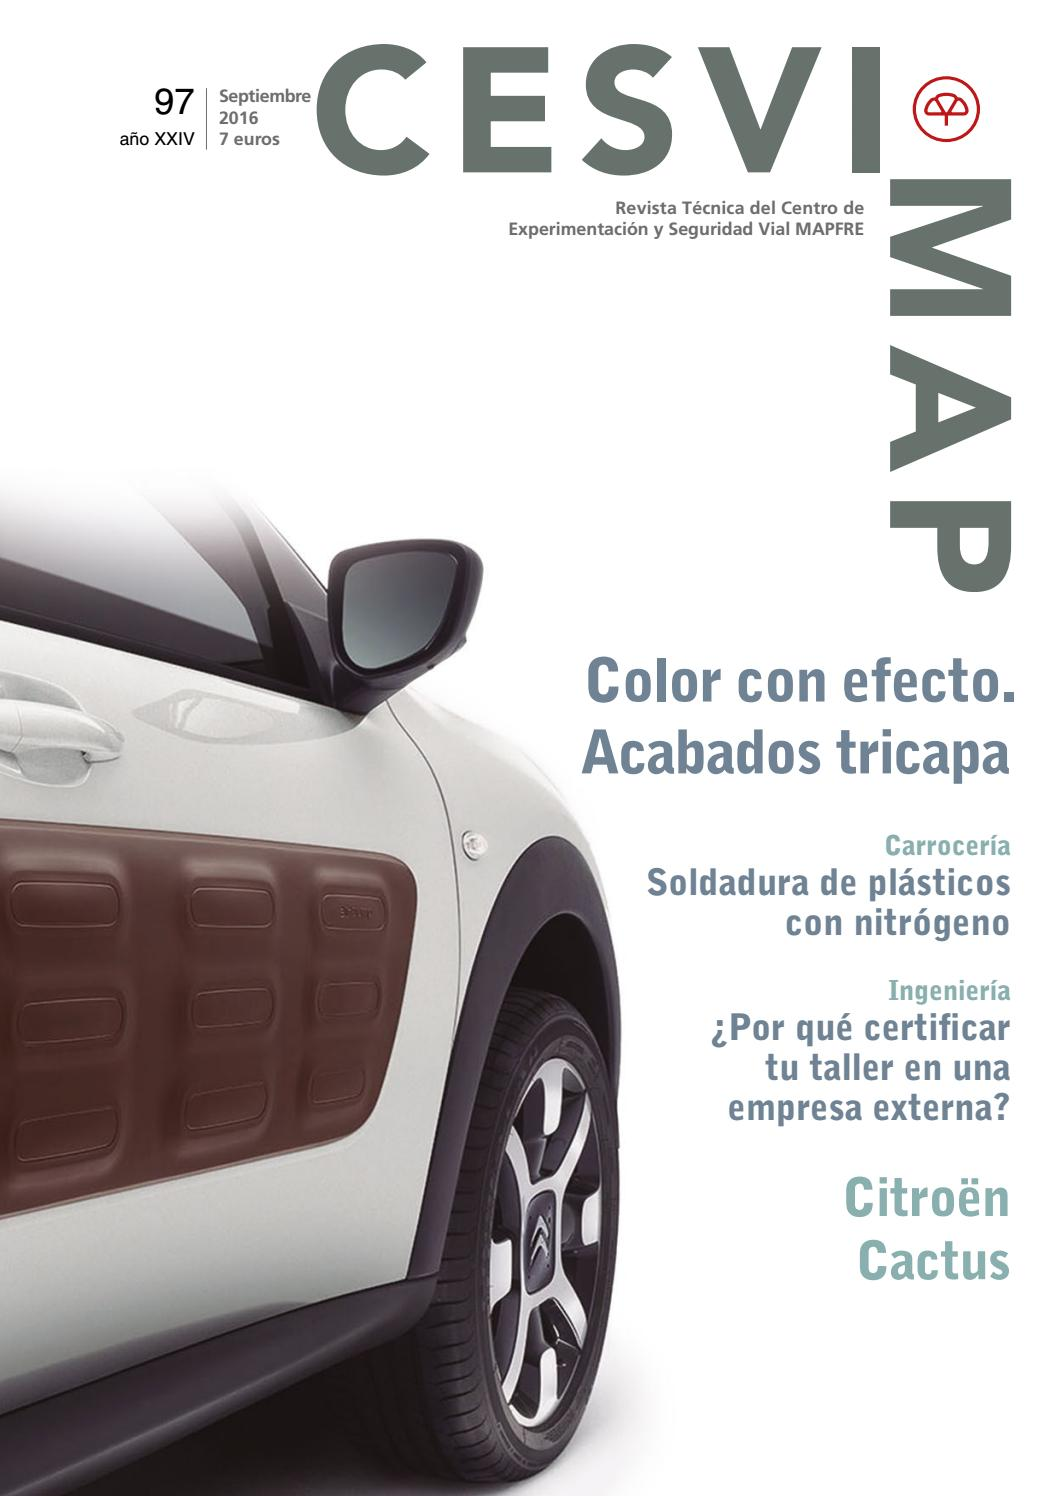 Revista CESVIMAP 97 by CESVIMAP - issuu